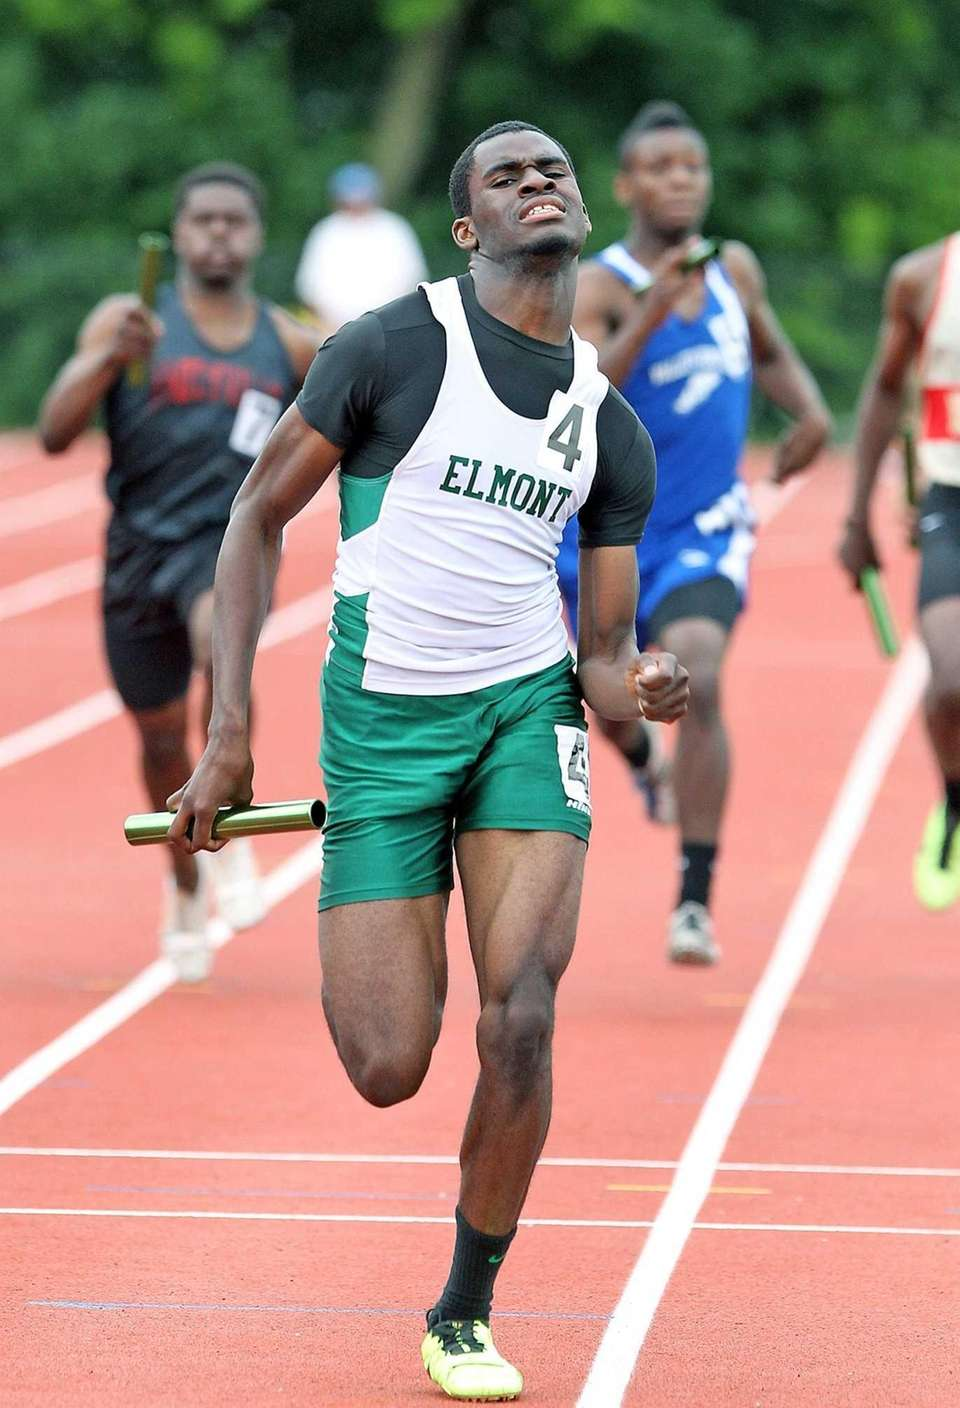 Elmont's anchor leg Obadare Ayo comes from behind